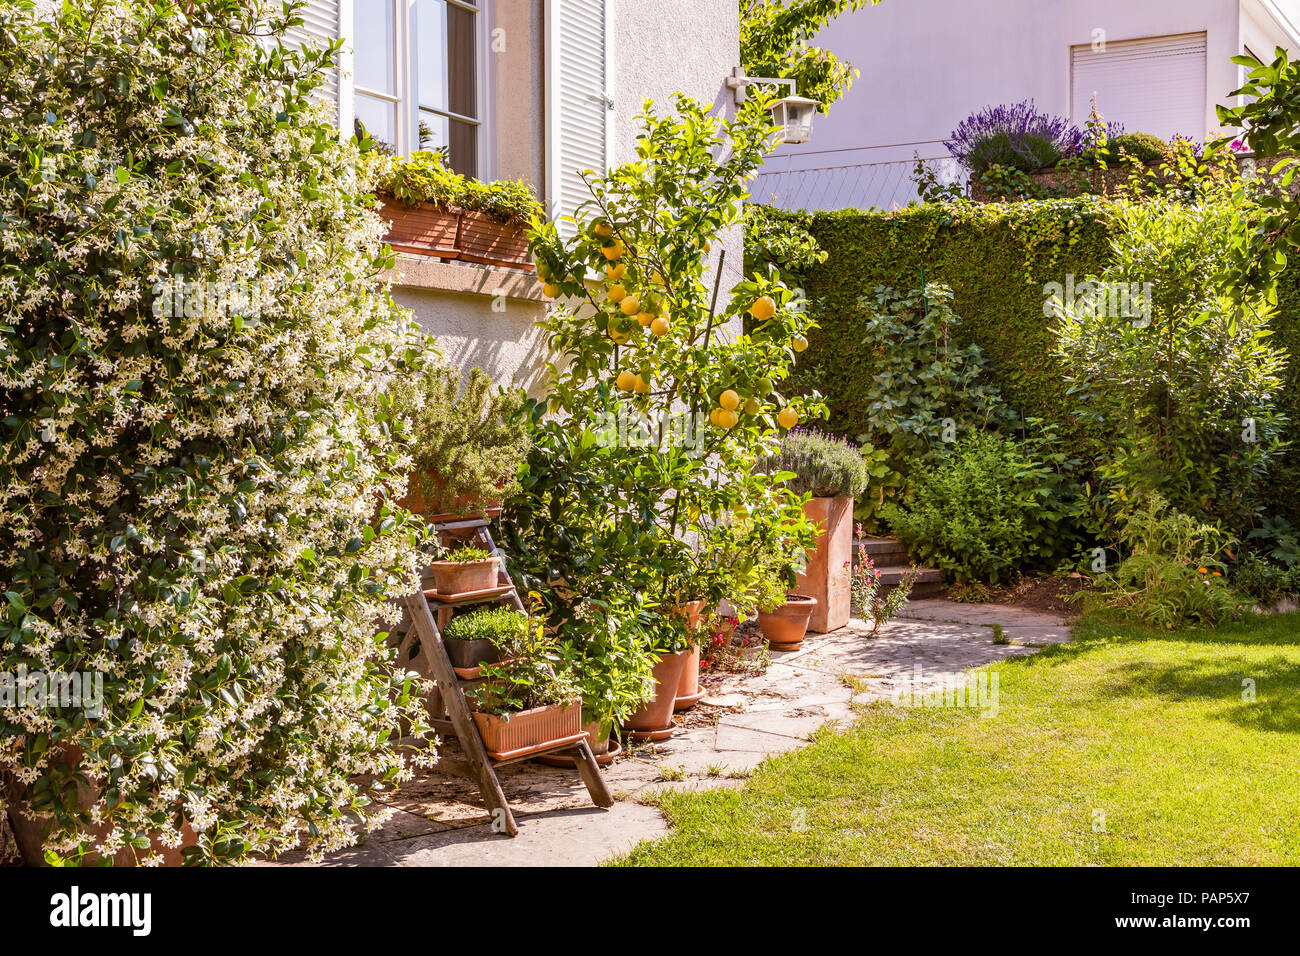 Germany, Stuttgart, potted plants in front of house - Stock Image